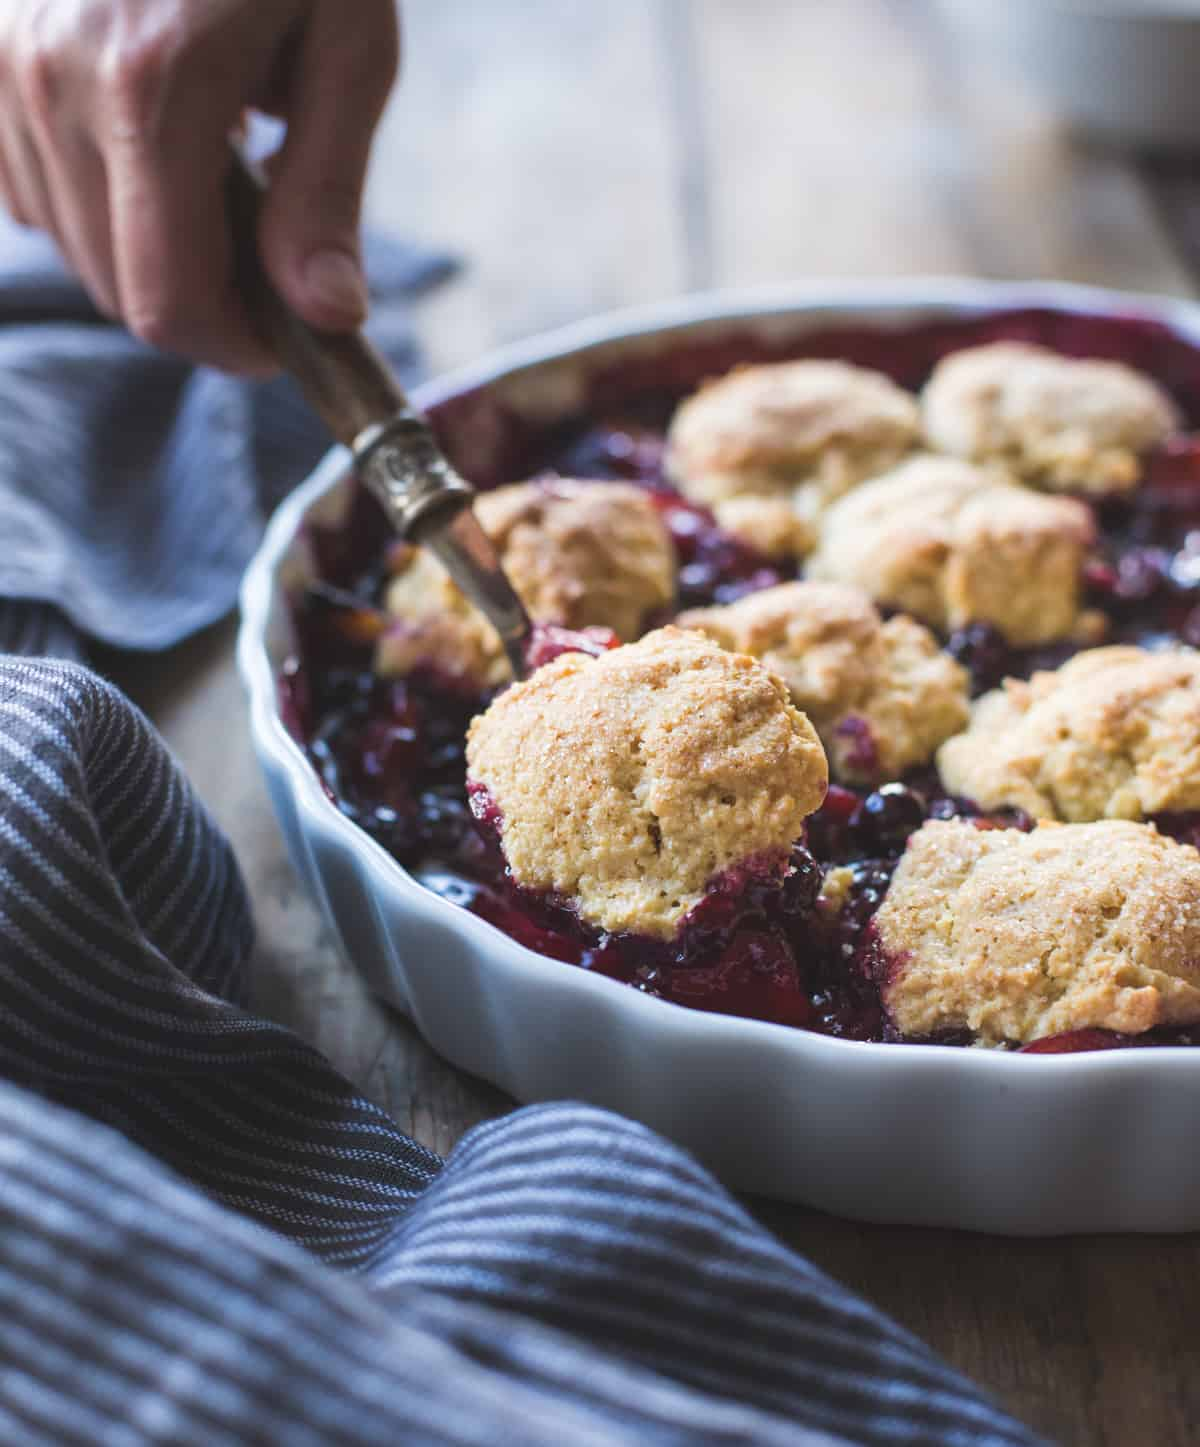 scooping Gluten-Free Blueberry Plum Cobbler with Corn Flour Biscuits